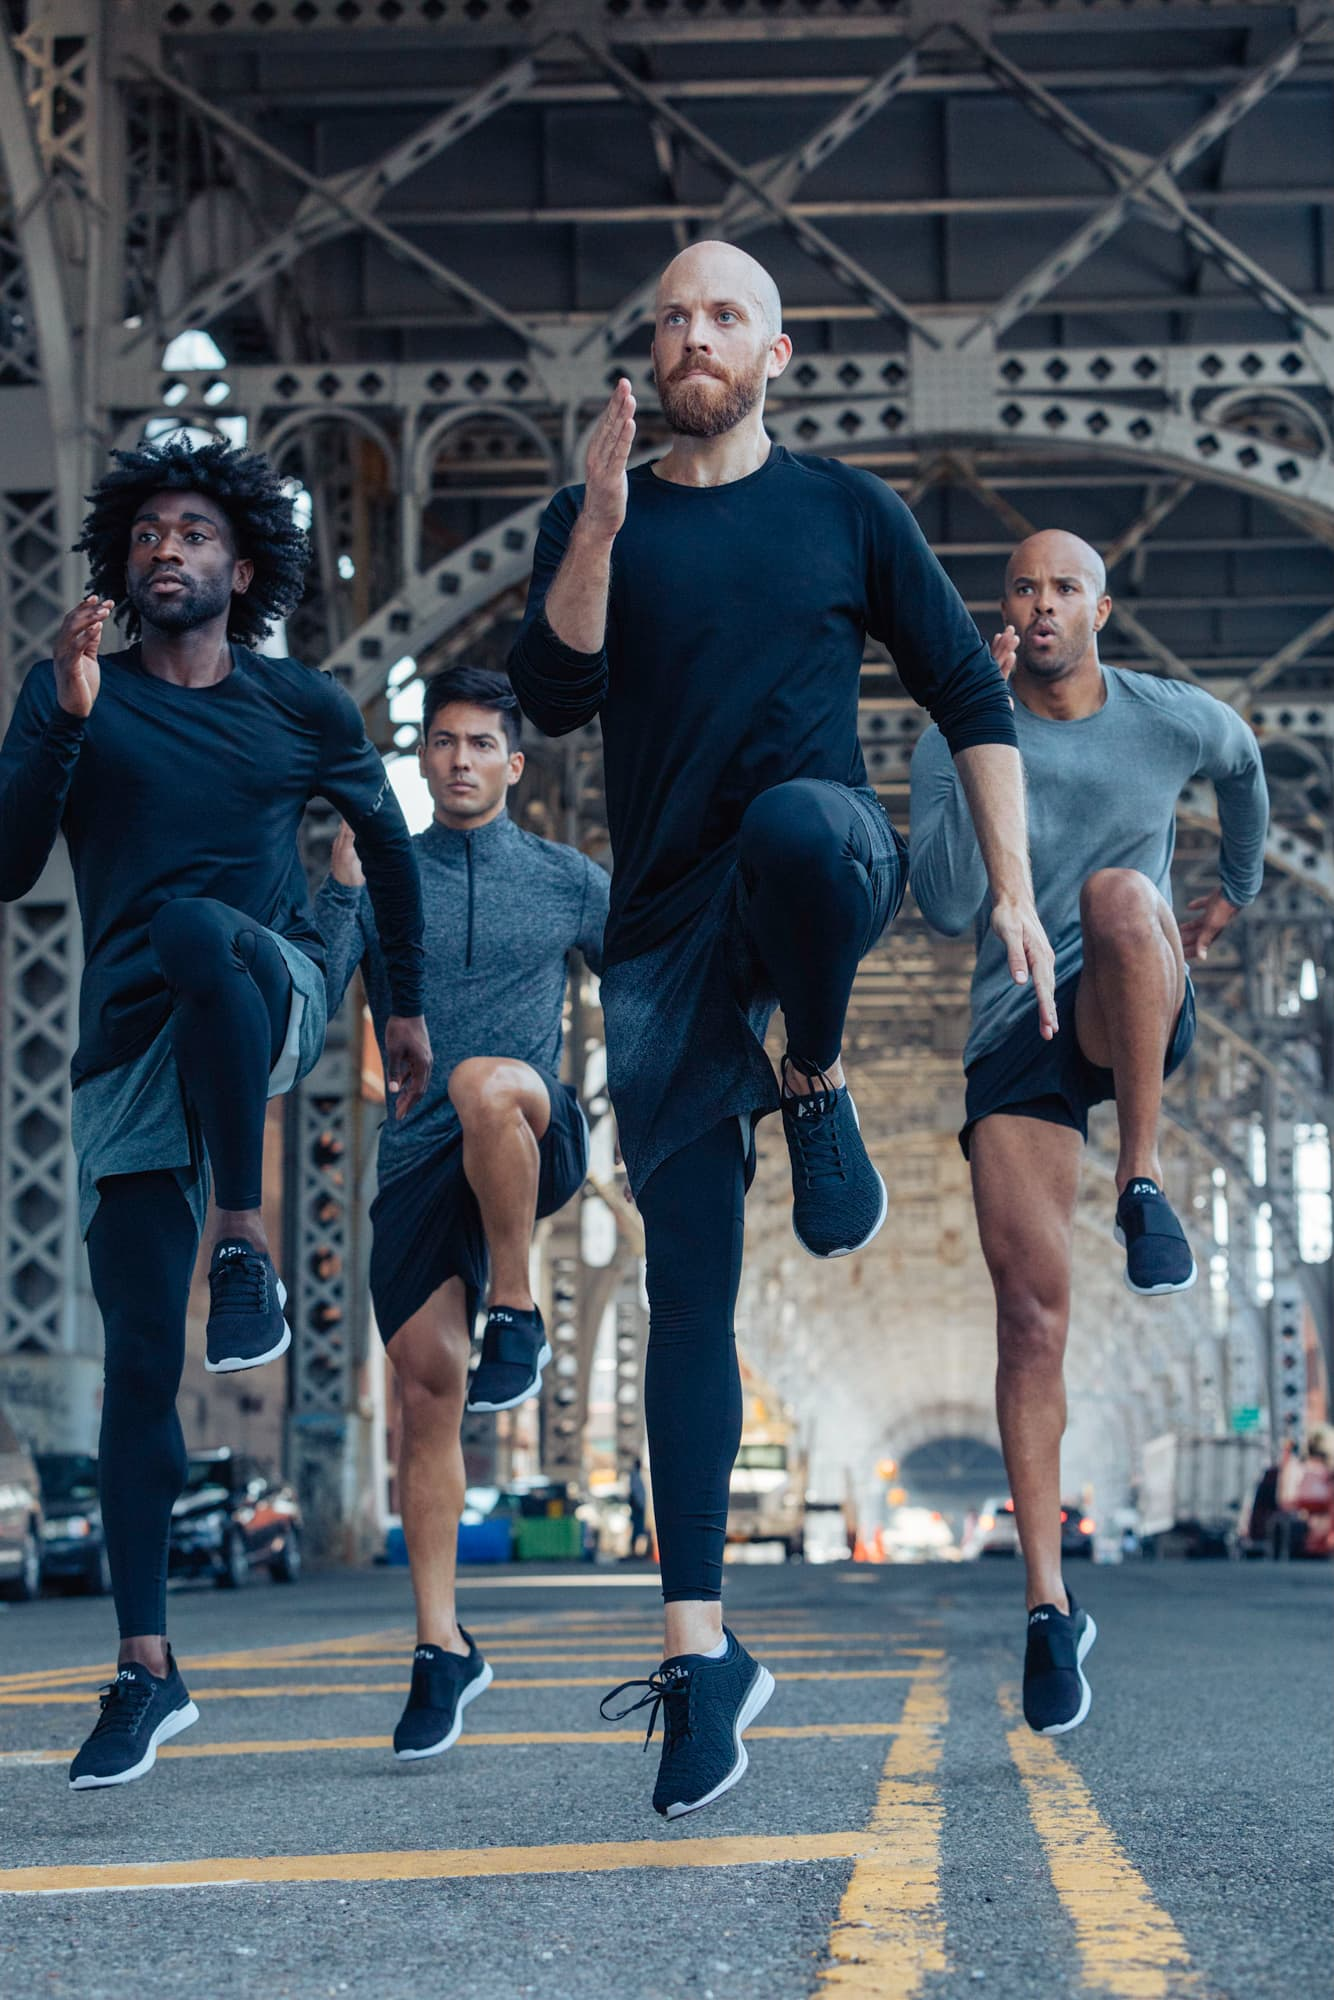 Lululemon - Rooted in Place